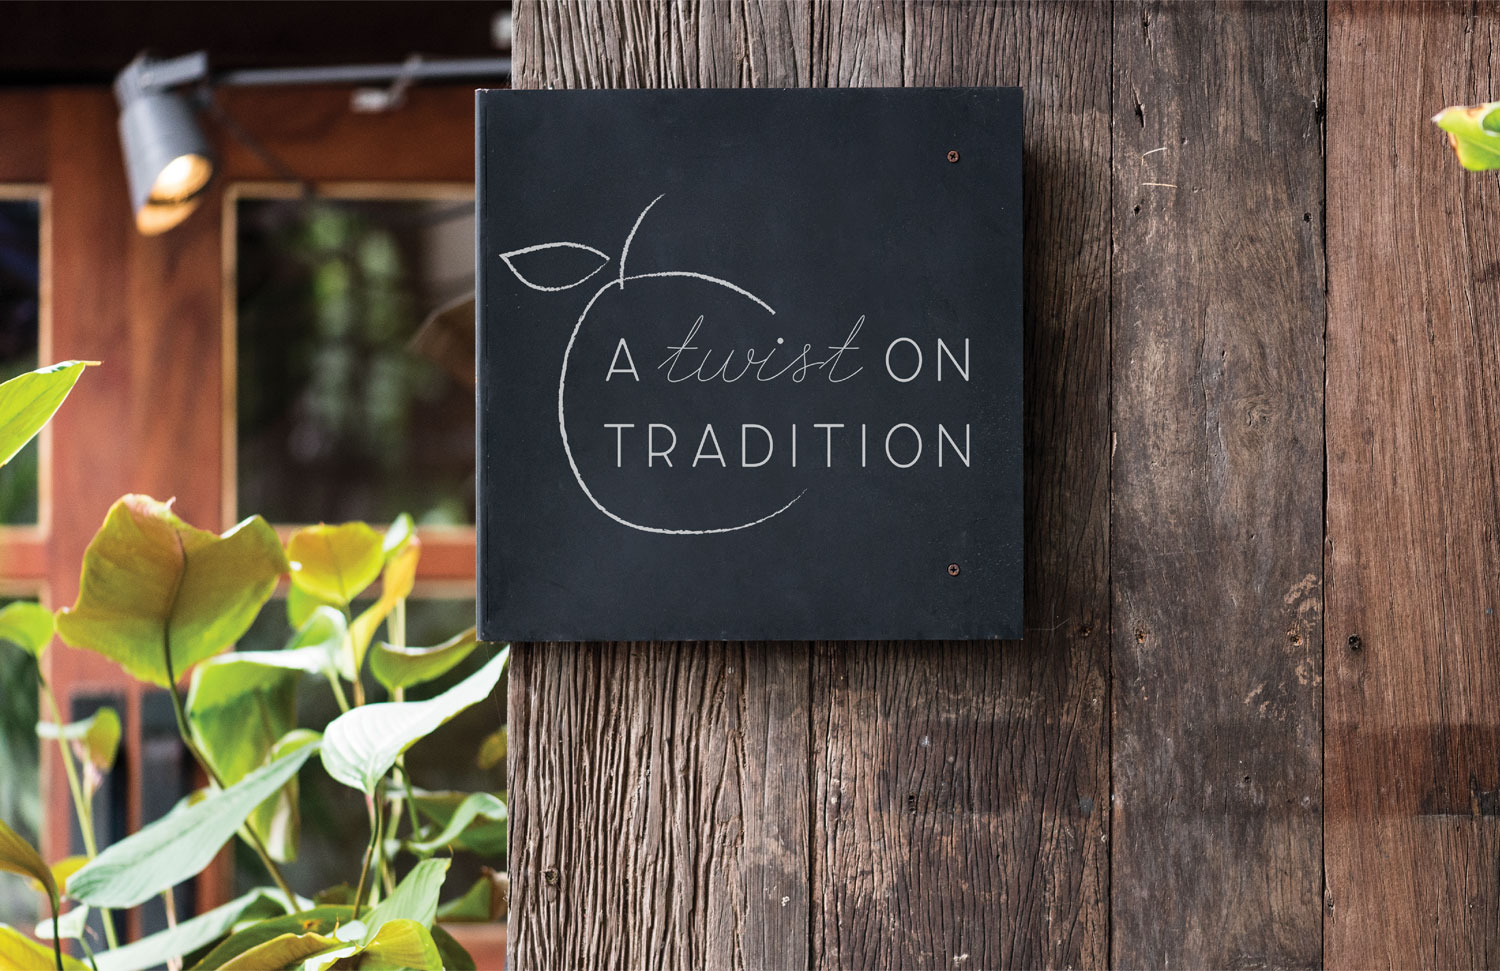 hand drawn apple on black chalkboard sign hanging on wood at farm that says